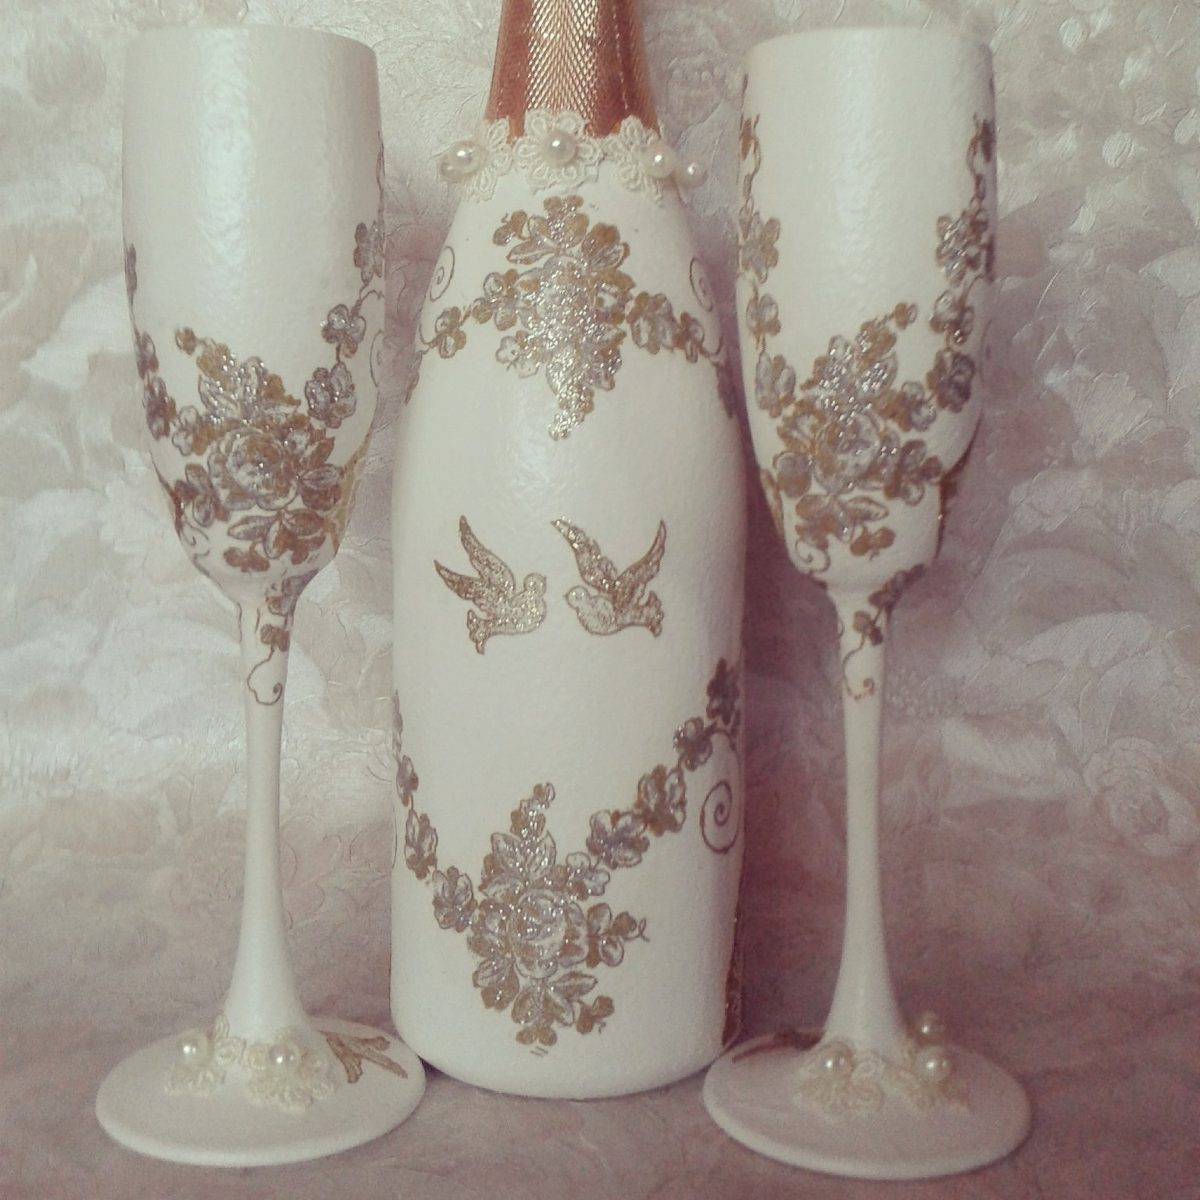 Comprar Botellas Decoradas Mas Copas Para Boda Y Botellas Decoradas 3 200 00